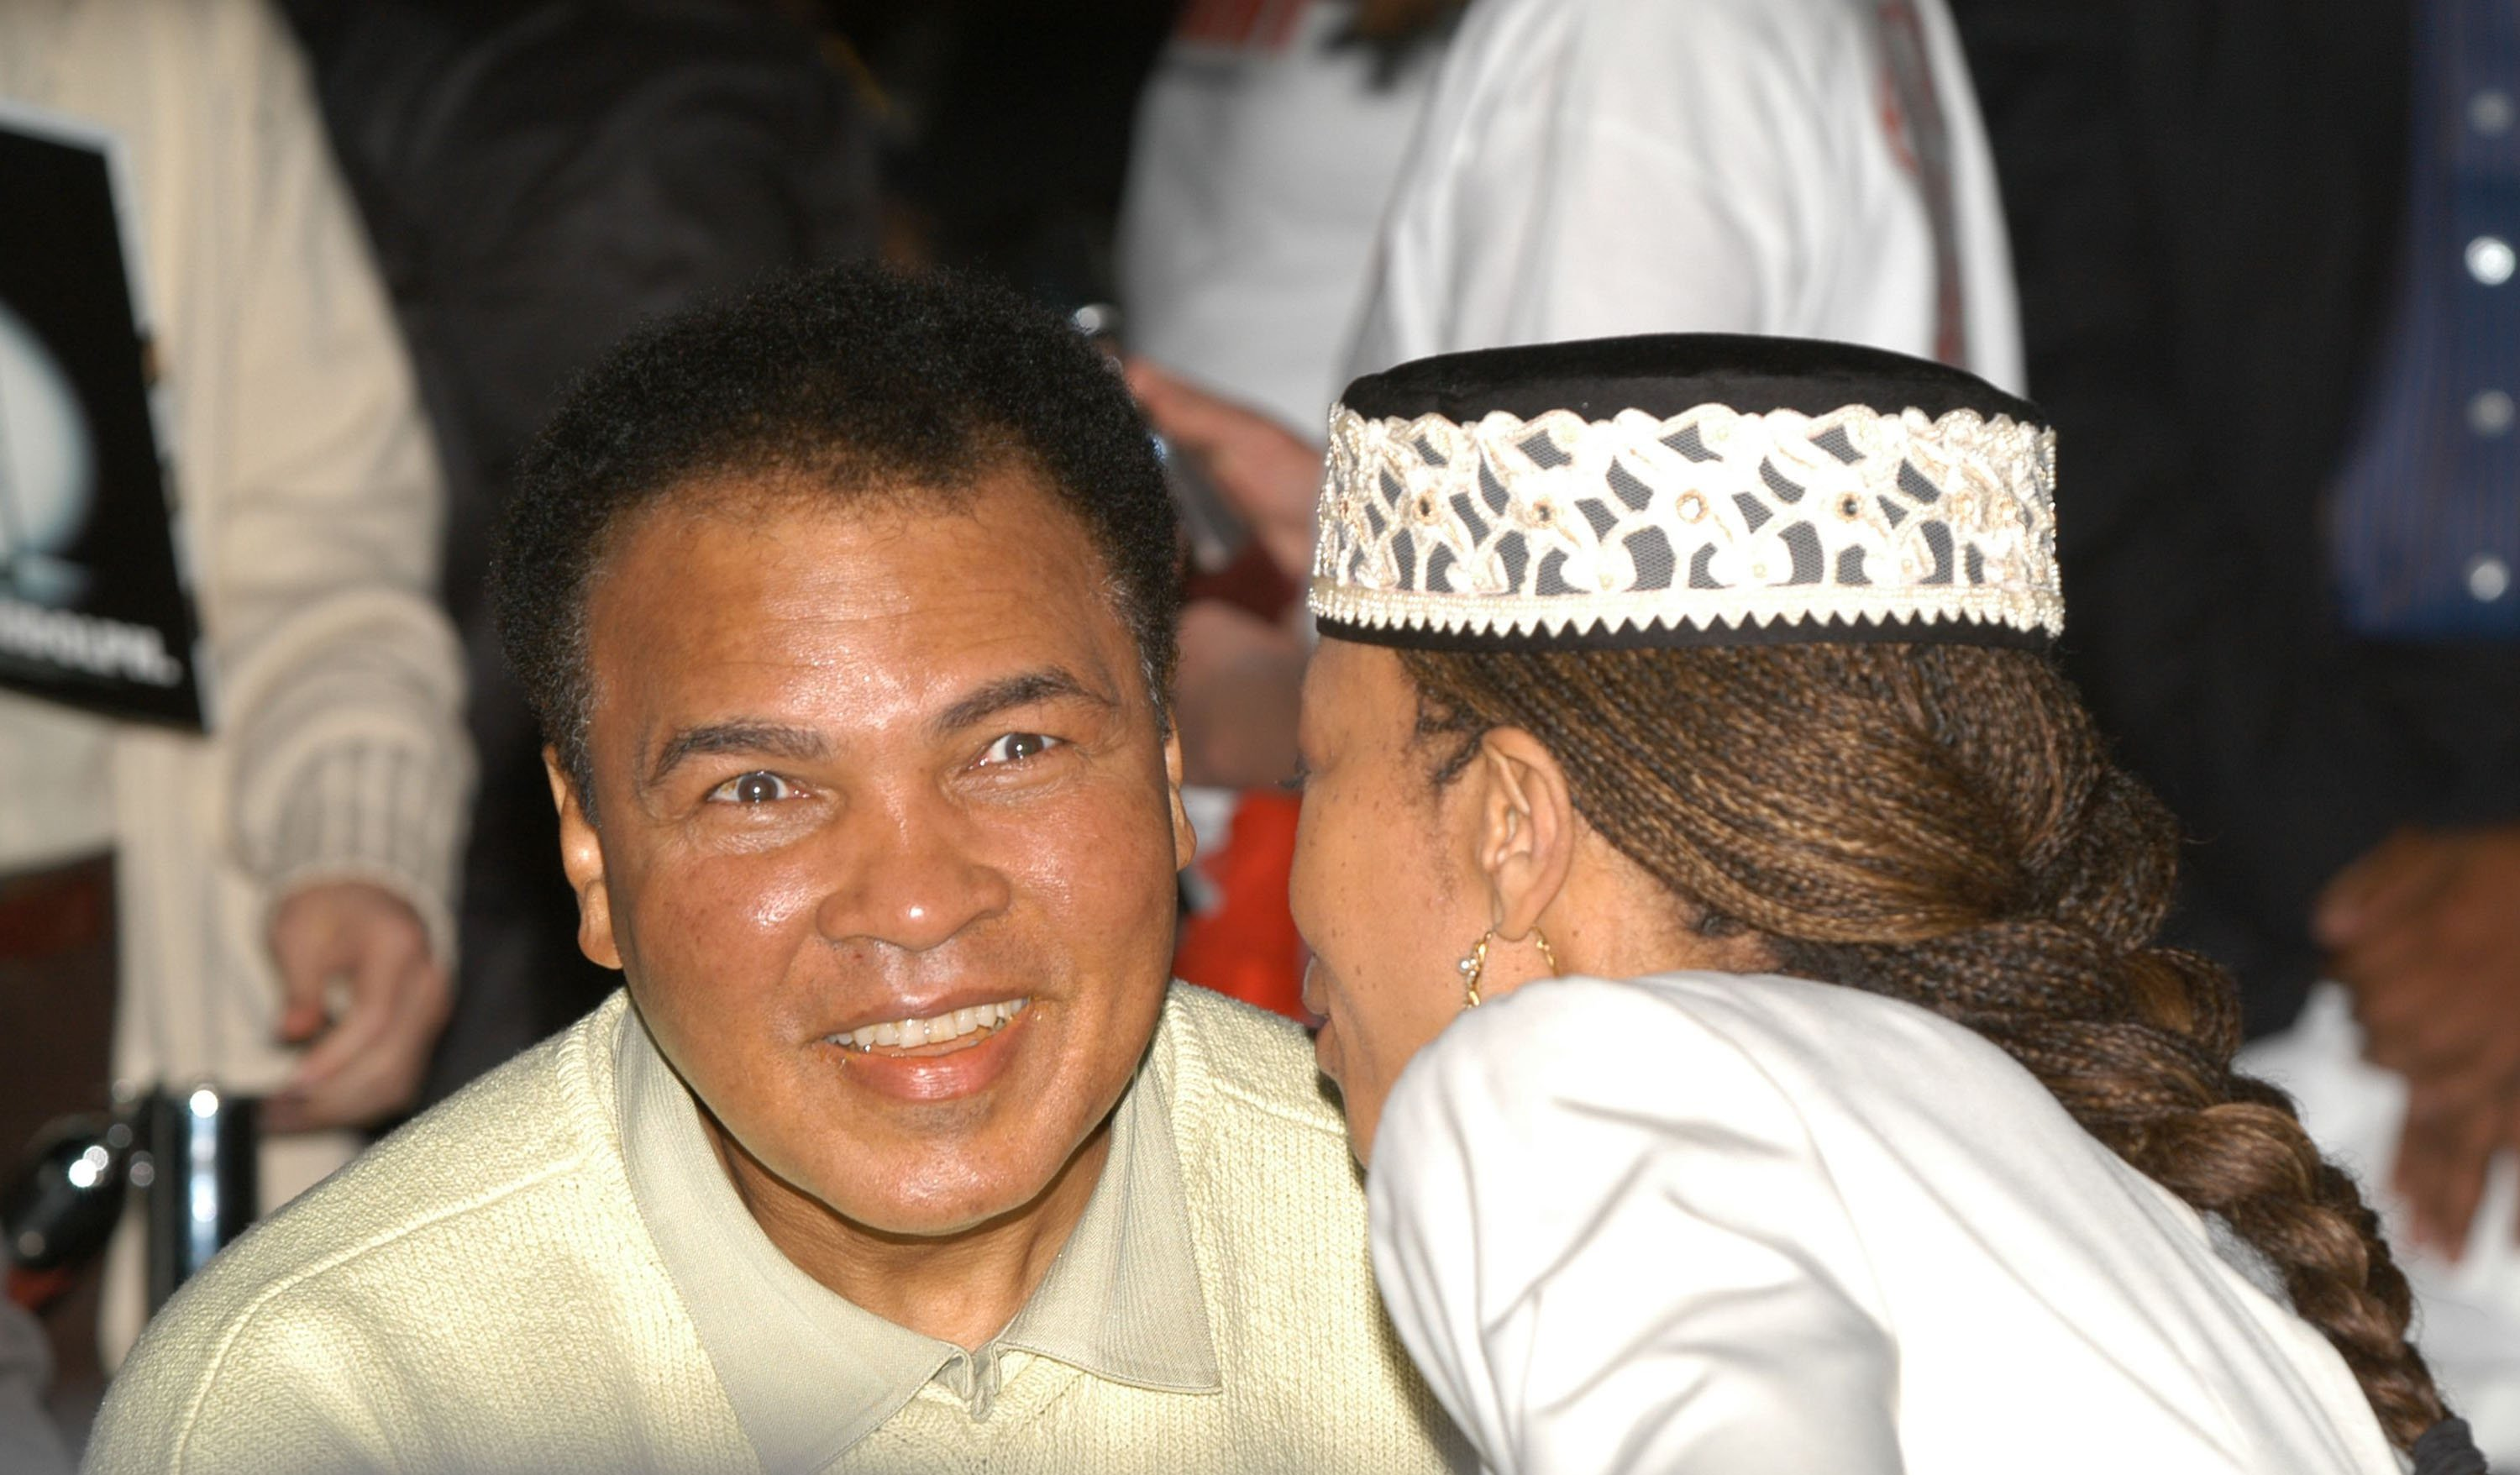 """Malcolm X's daughter, Attallah, speaks with Muhammad Ali as they attend the Miami Art Basel Taschen book premiere of Muhammad Ali's book, """"GOAT - Greatest Of All Time"""" at the Miami Convention Center December 6, 2003 in Miami, Florida.